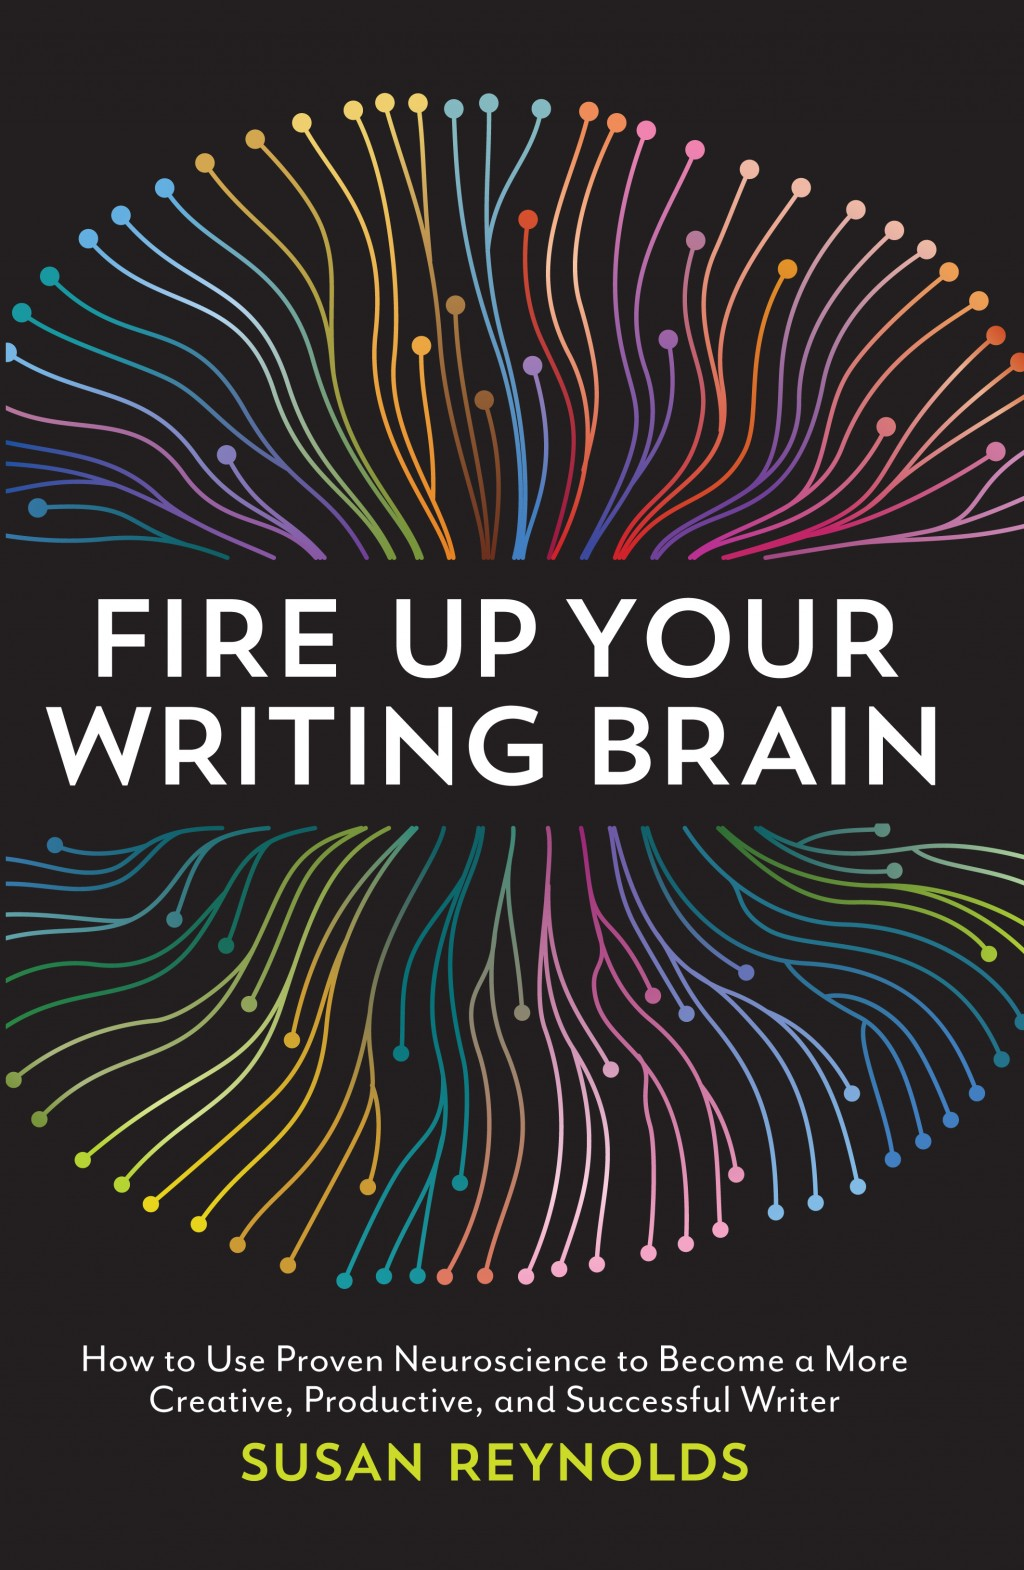 019 Essay Example Fire Up Your Writing Brain Models For Writers Short Essays Singular Composition 12th Edition 13th Pdf Large